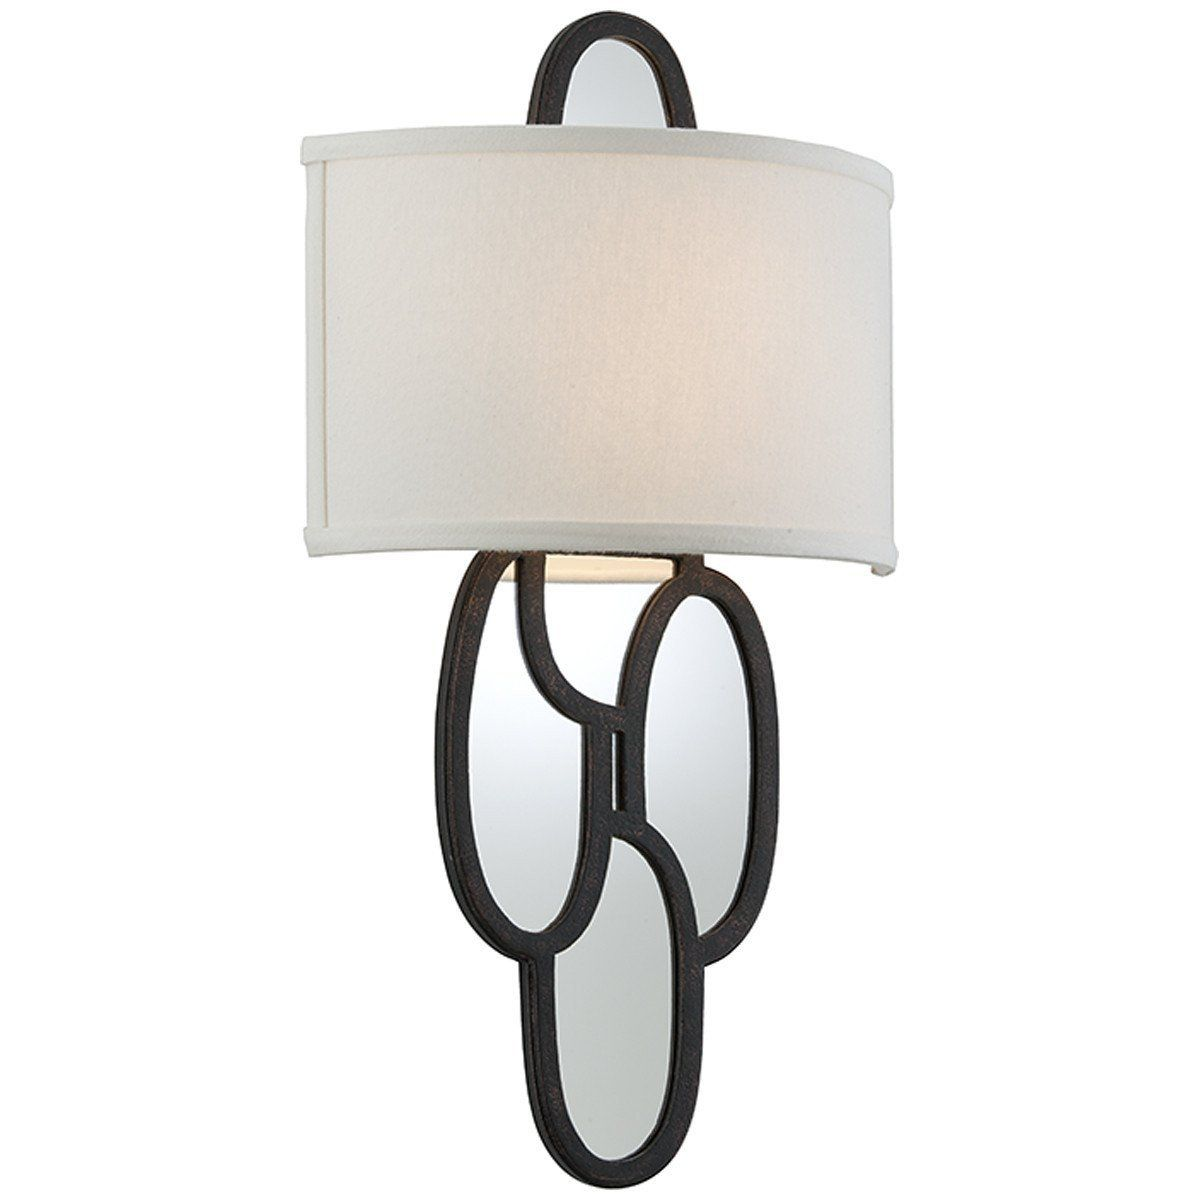 Troy Lighting Chime 2 Lights Wall Sconce Products